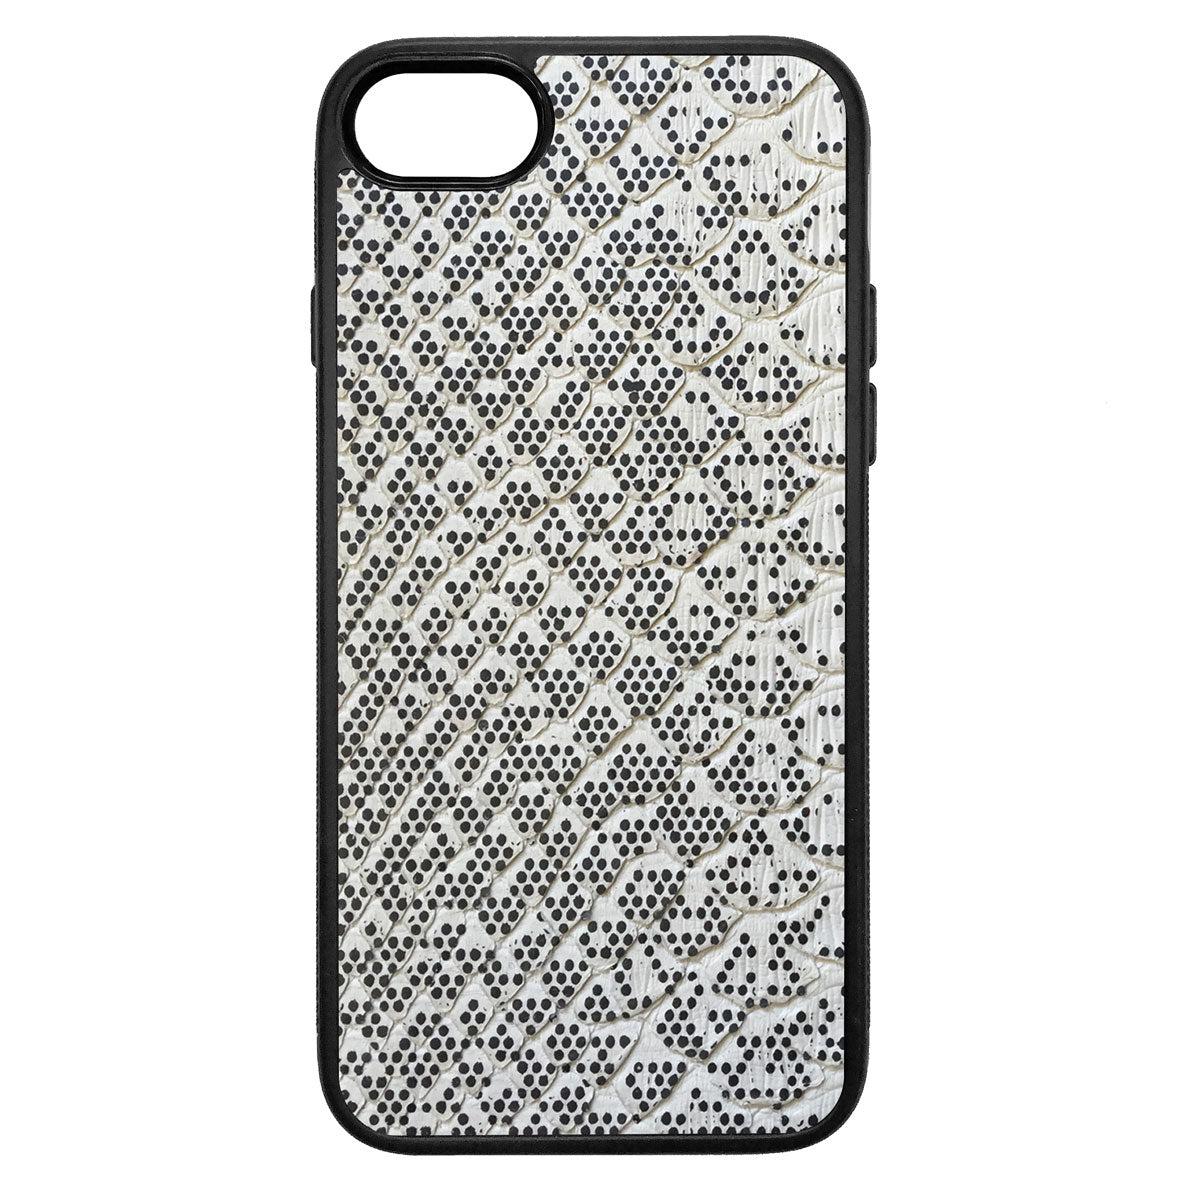 Pixelated Python Back iPhone 7 Leather Case